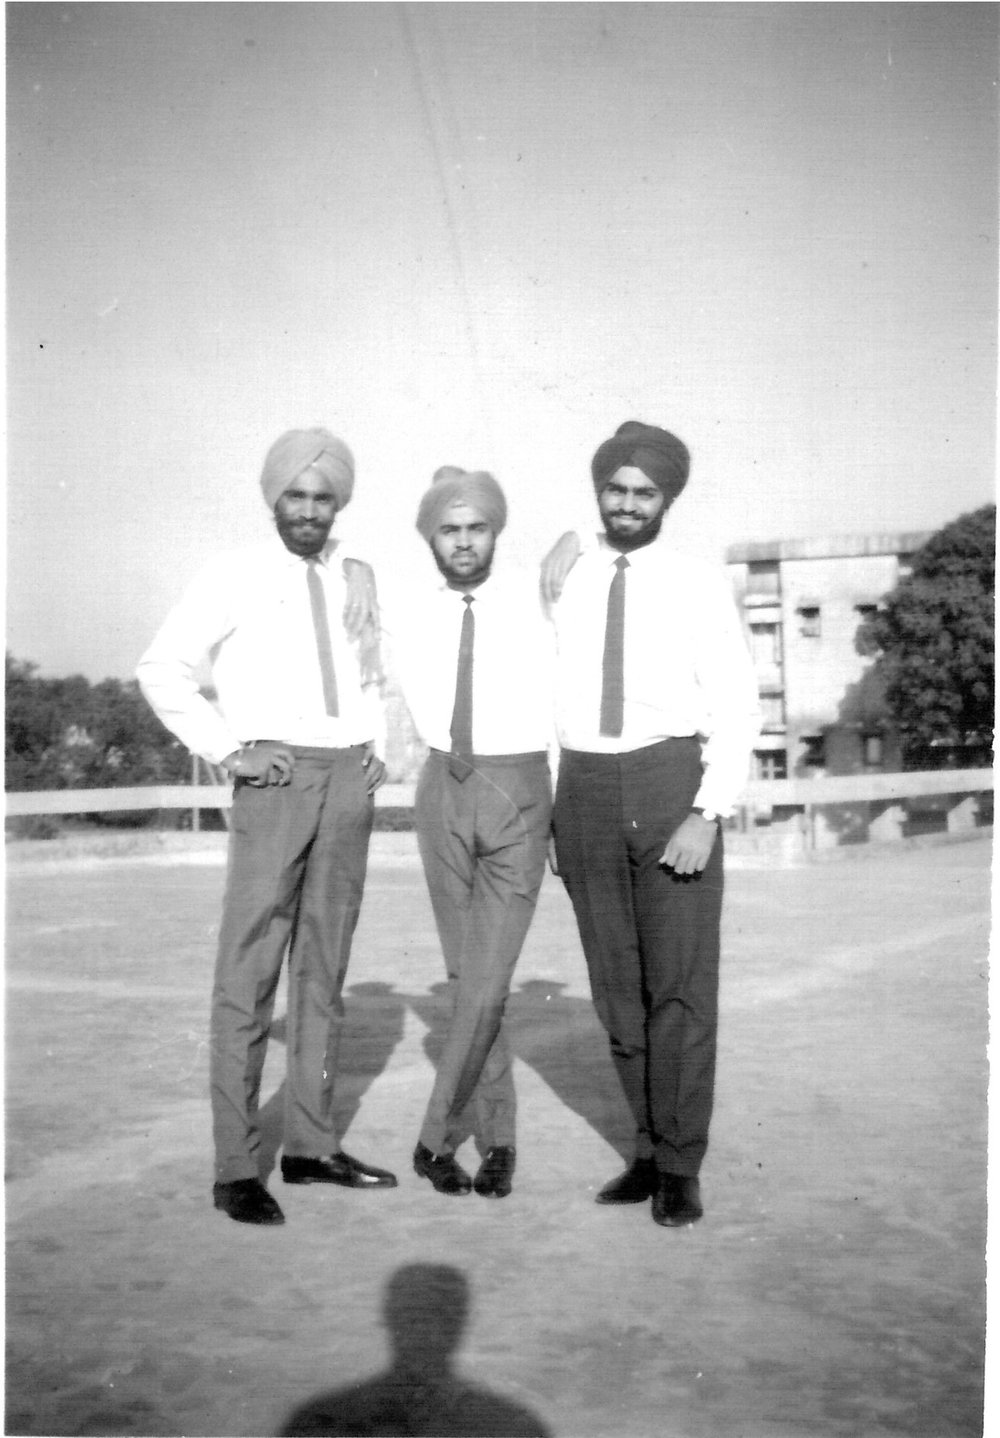 Kanwal Rekhi with colleagues at IIT.  (Photo is provided as a courtesy to The $8 Man and is the property of Kanwal Rekhi)